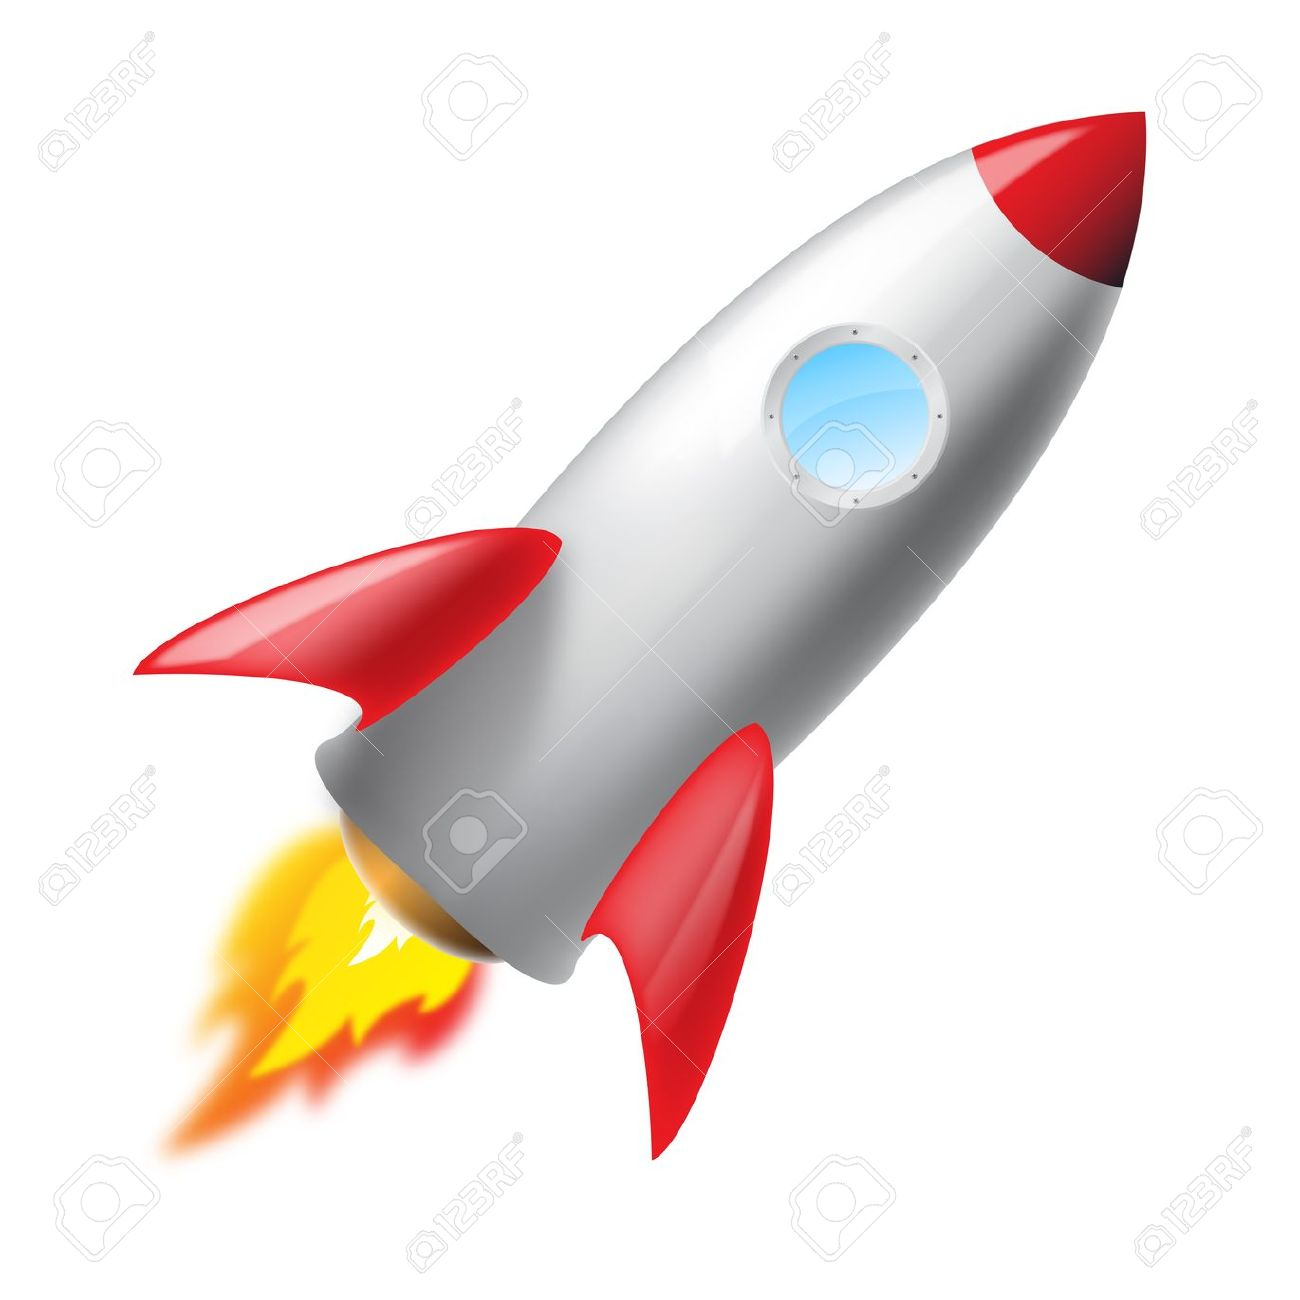 Rocket launch clipart 2 » Clipart Station.